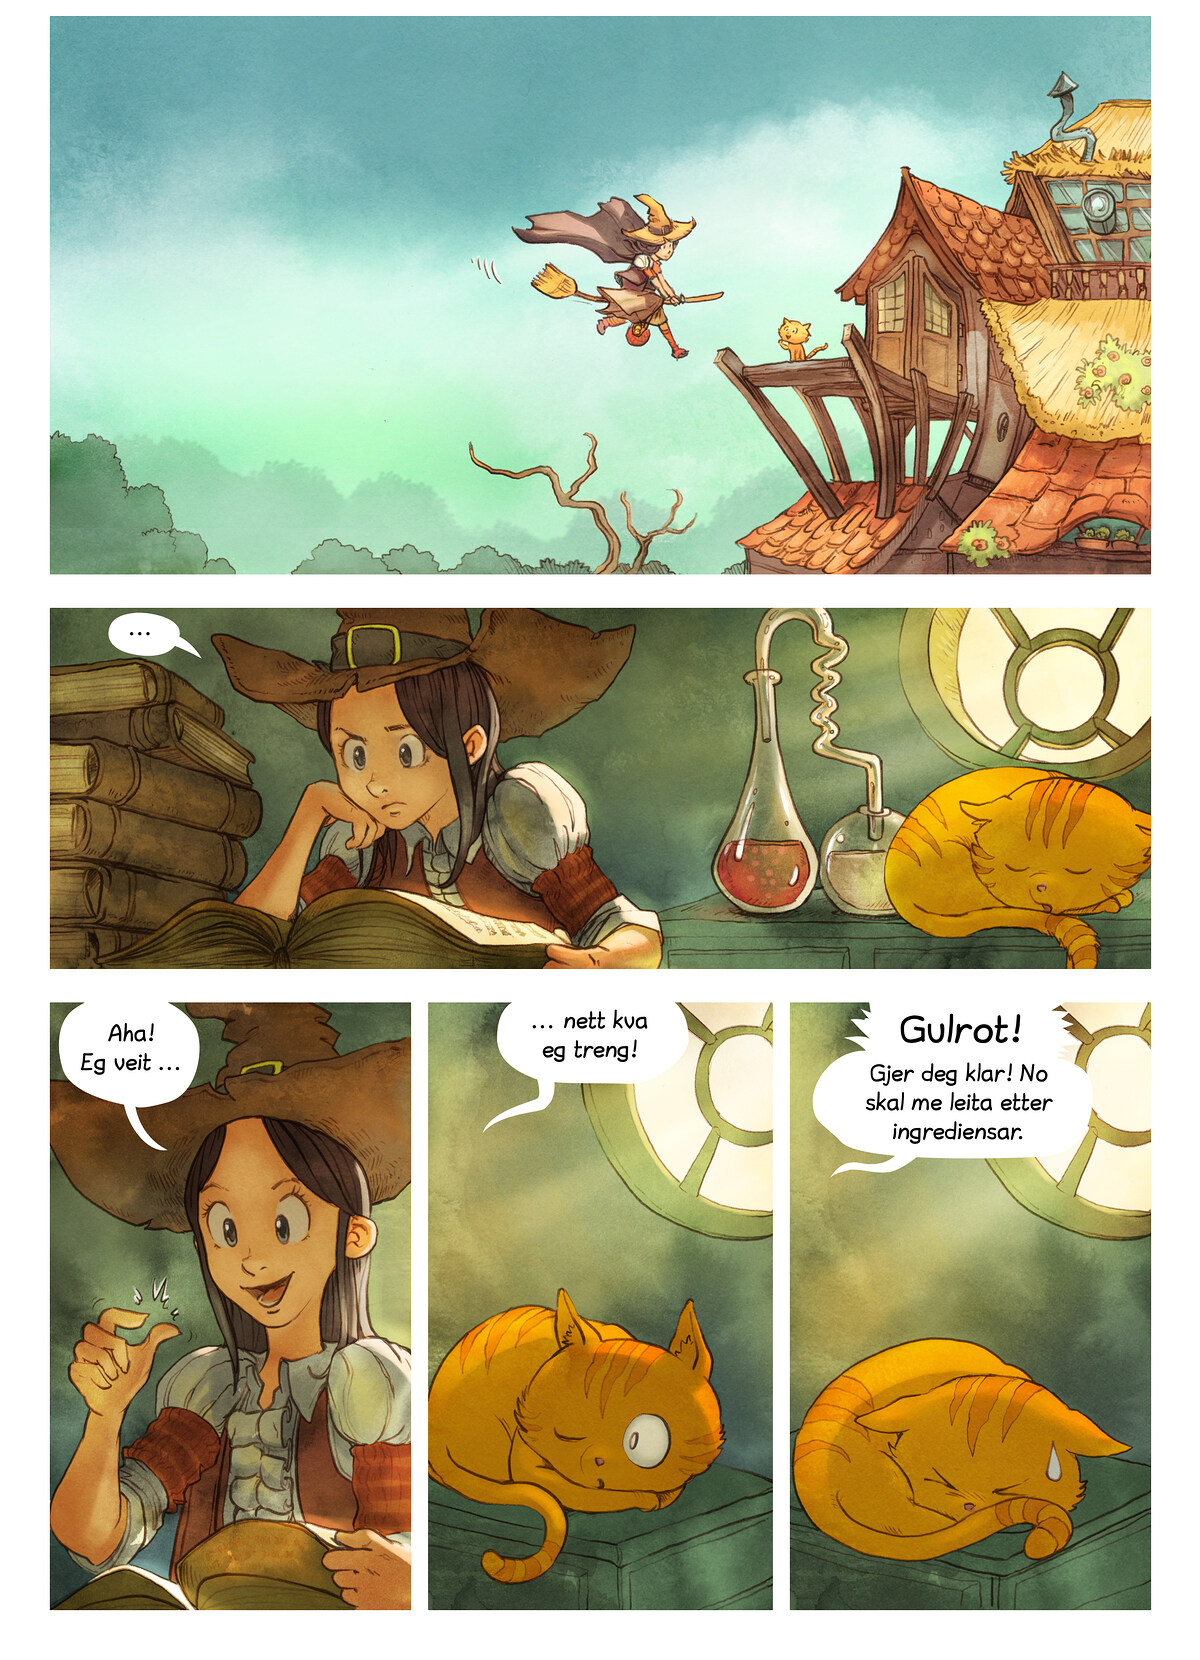 A webcomic page of Pepper&Carrot, episode 3 [nn], side 4